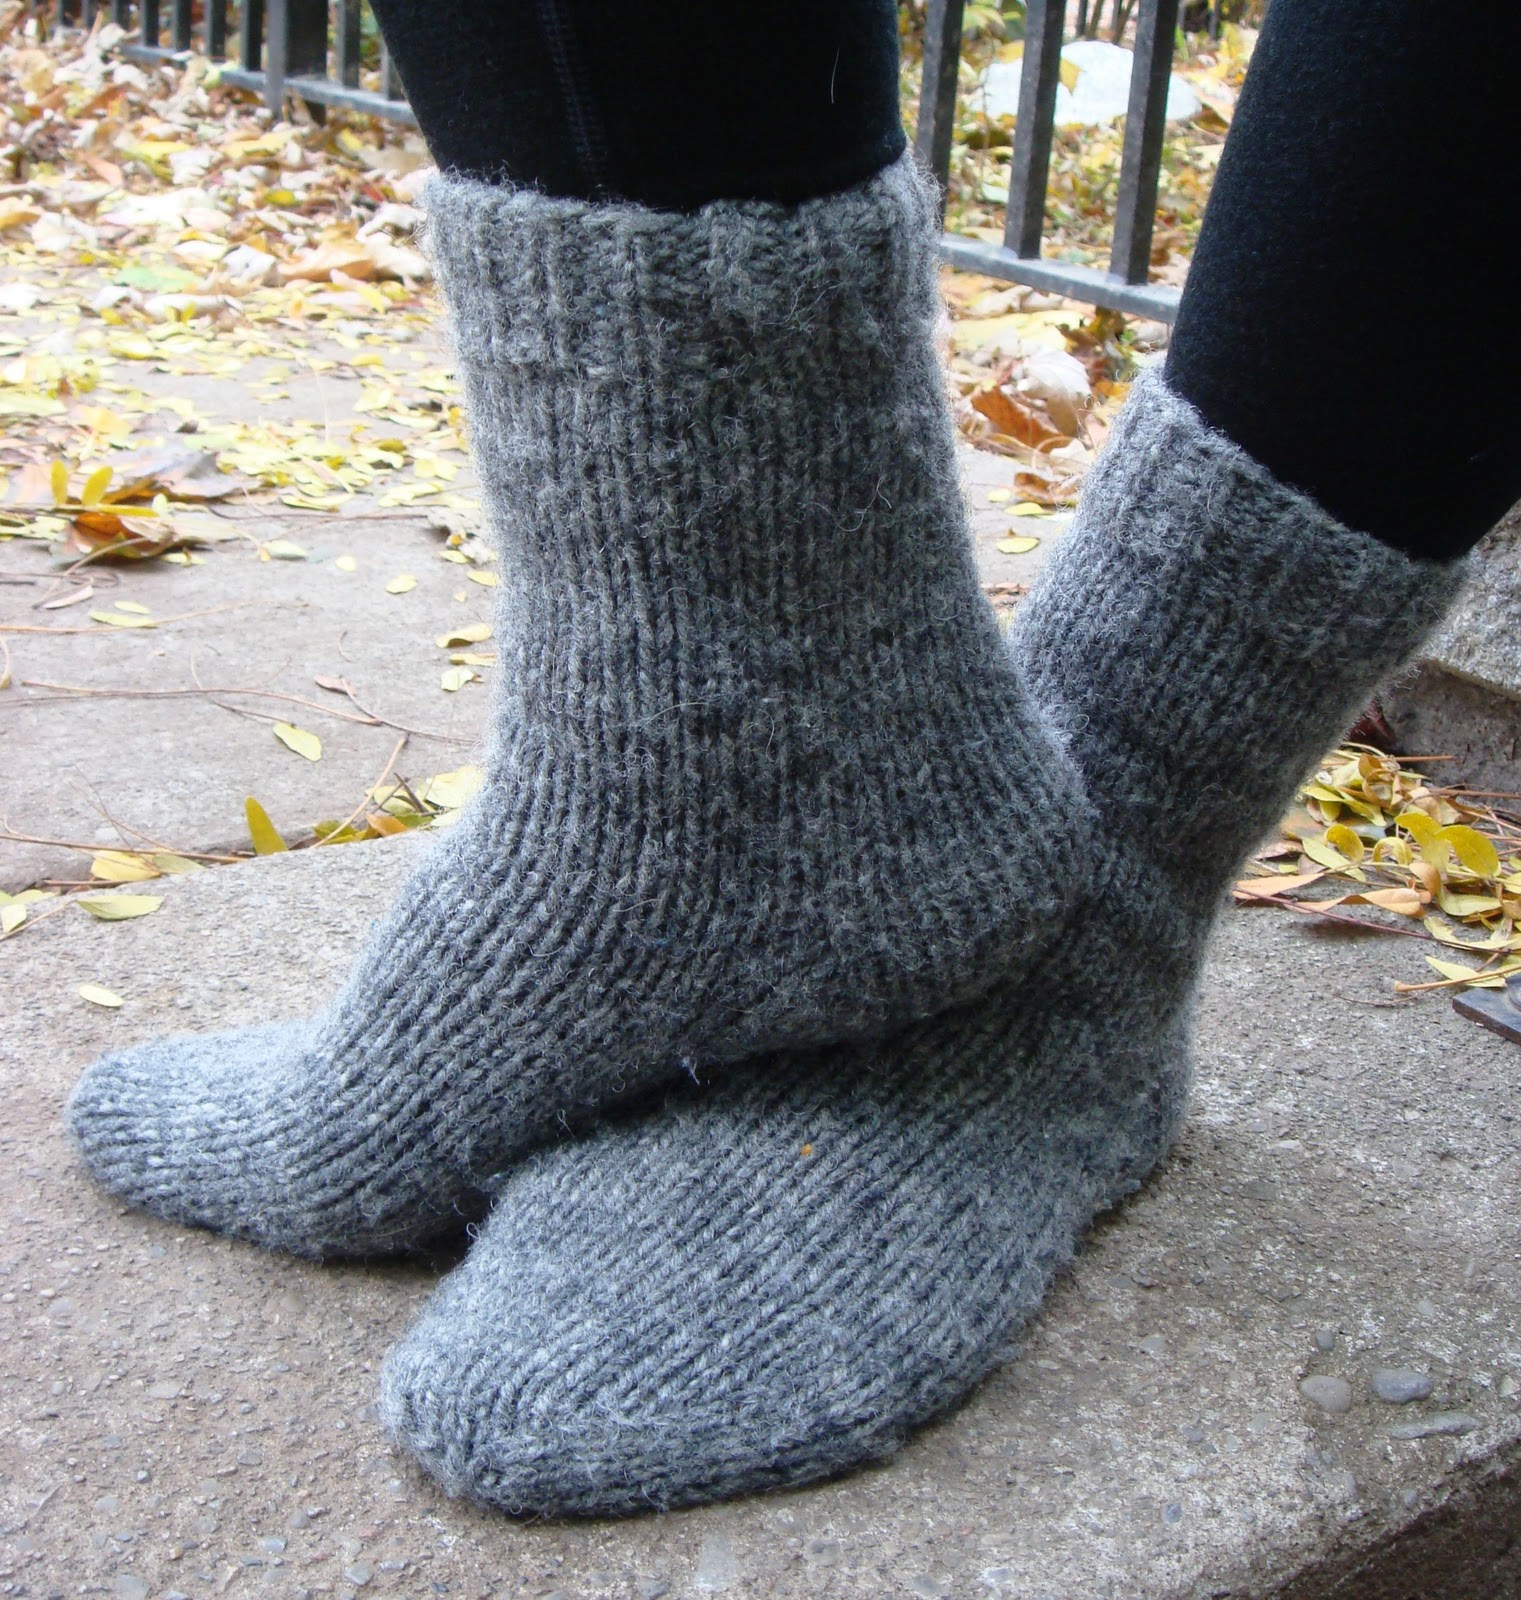 Kate atherley knits a lot mainly socks tuffy socks free pattern is the unbelievably low price 599cdn for a skein purchasable online from ram wools in winnipeg 1 skein will make a pair of womens medium socks bankloansurffo Choice Image